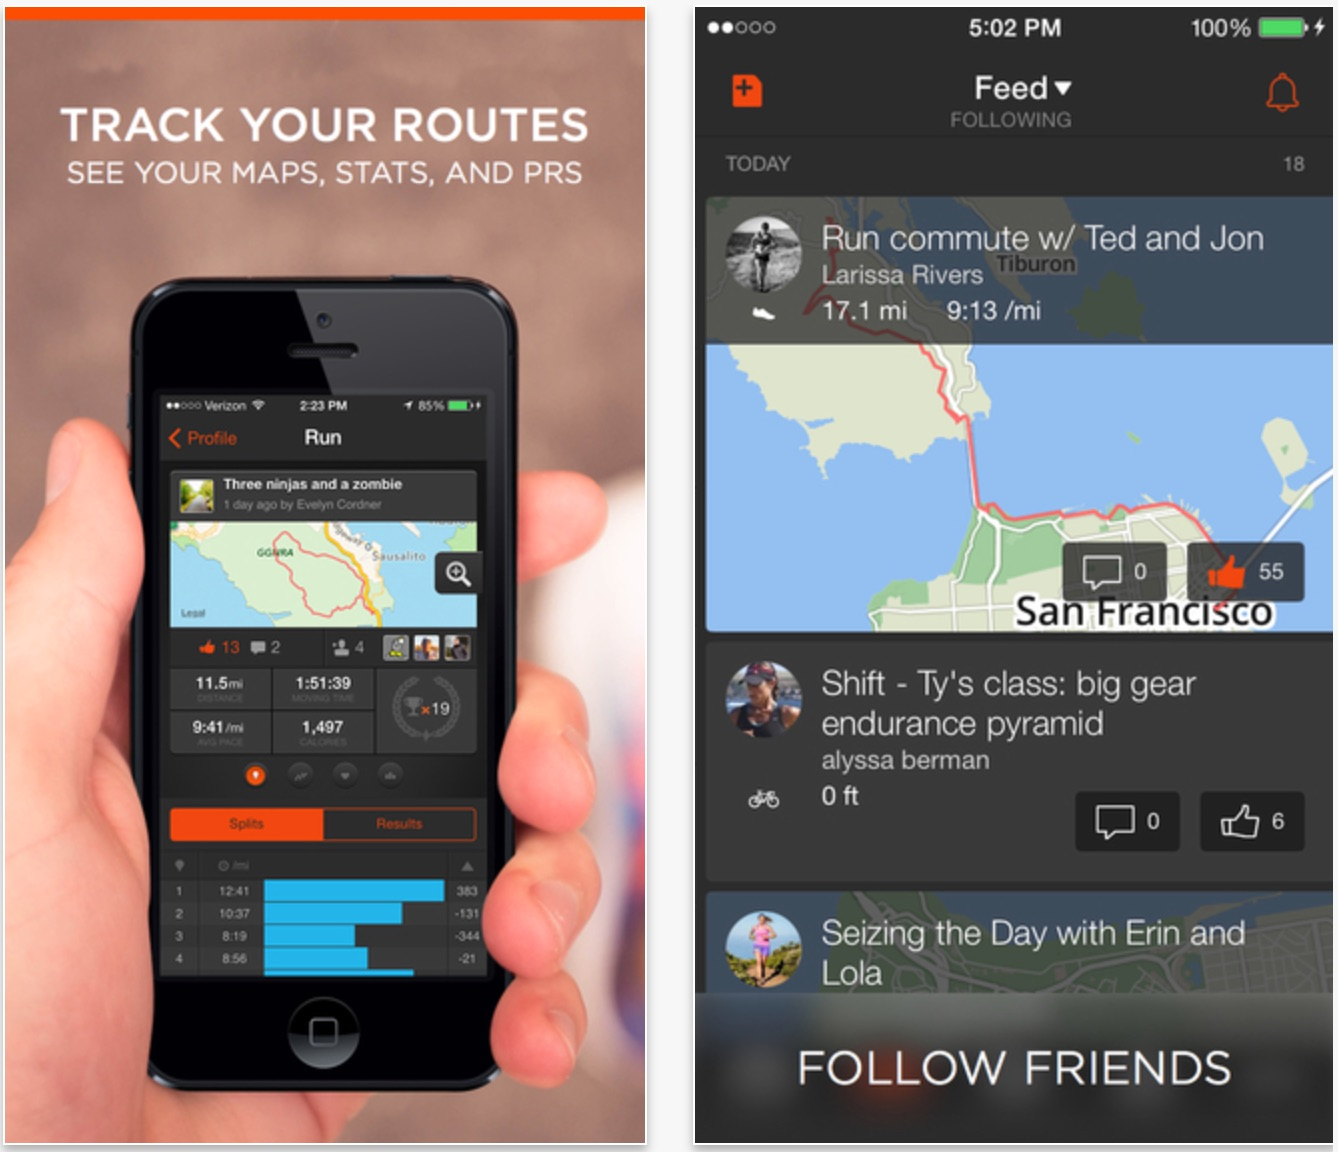 Cycling-Centric Fitness App Strava Raises $18.5 Million in Venture Capital Funding